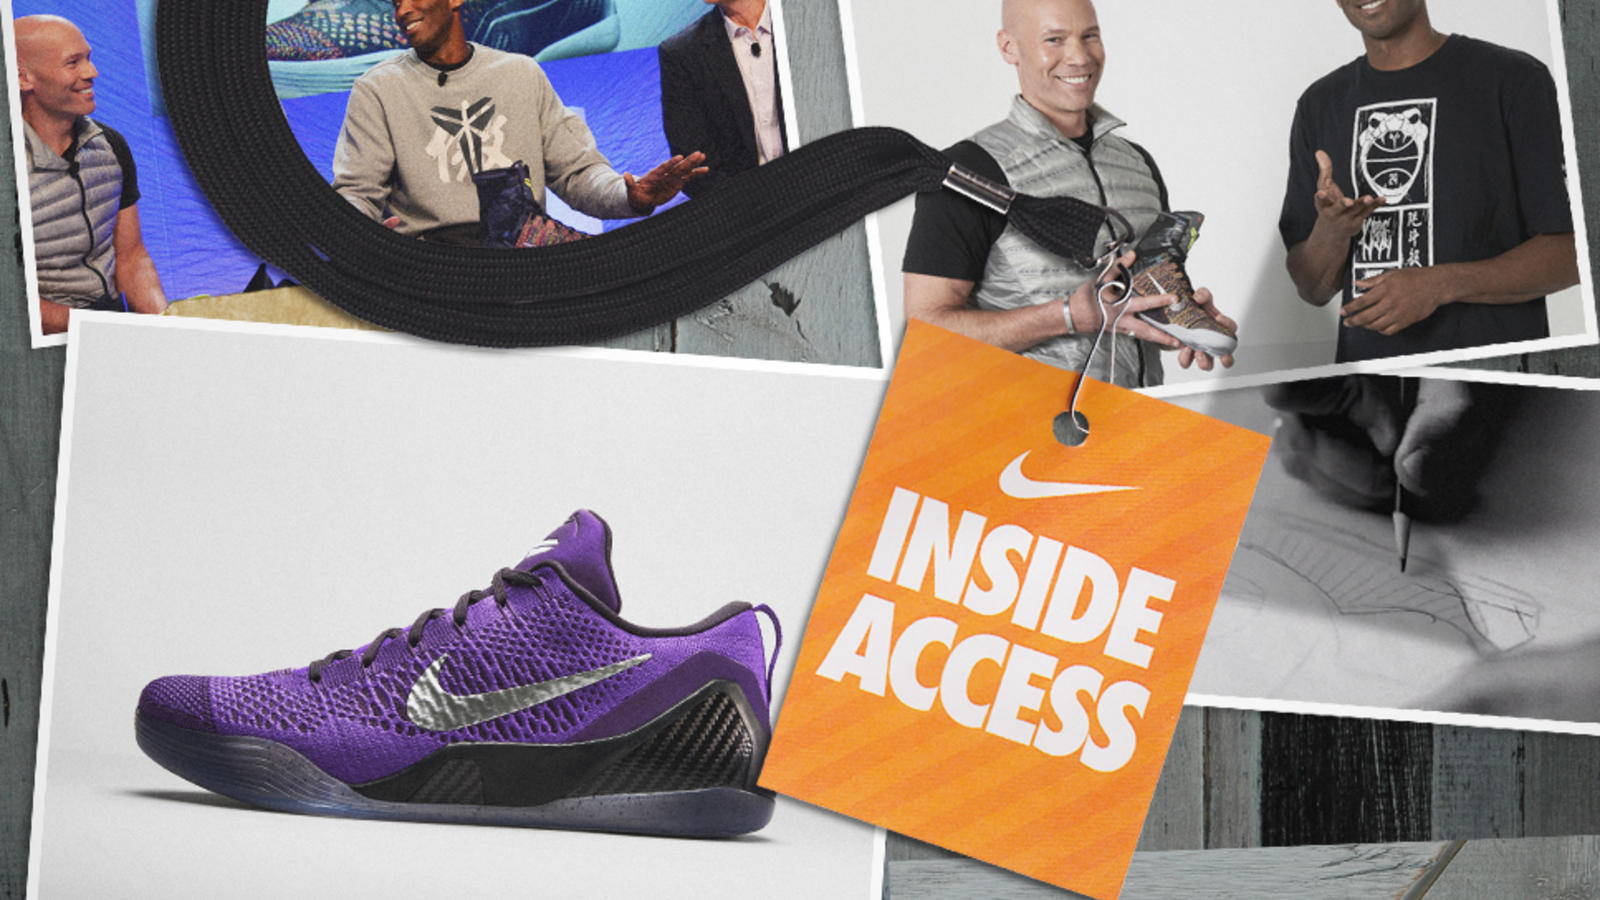 check out fc368 a44a9 Inside Access  Kobe 9 Elite Low.  fa14 nike kobe9elitelow purple 639045 515 top down fb.  fa14 nike kobe9elitelow purple 639045 515 medial fb